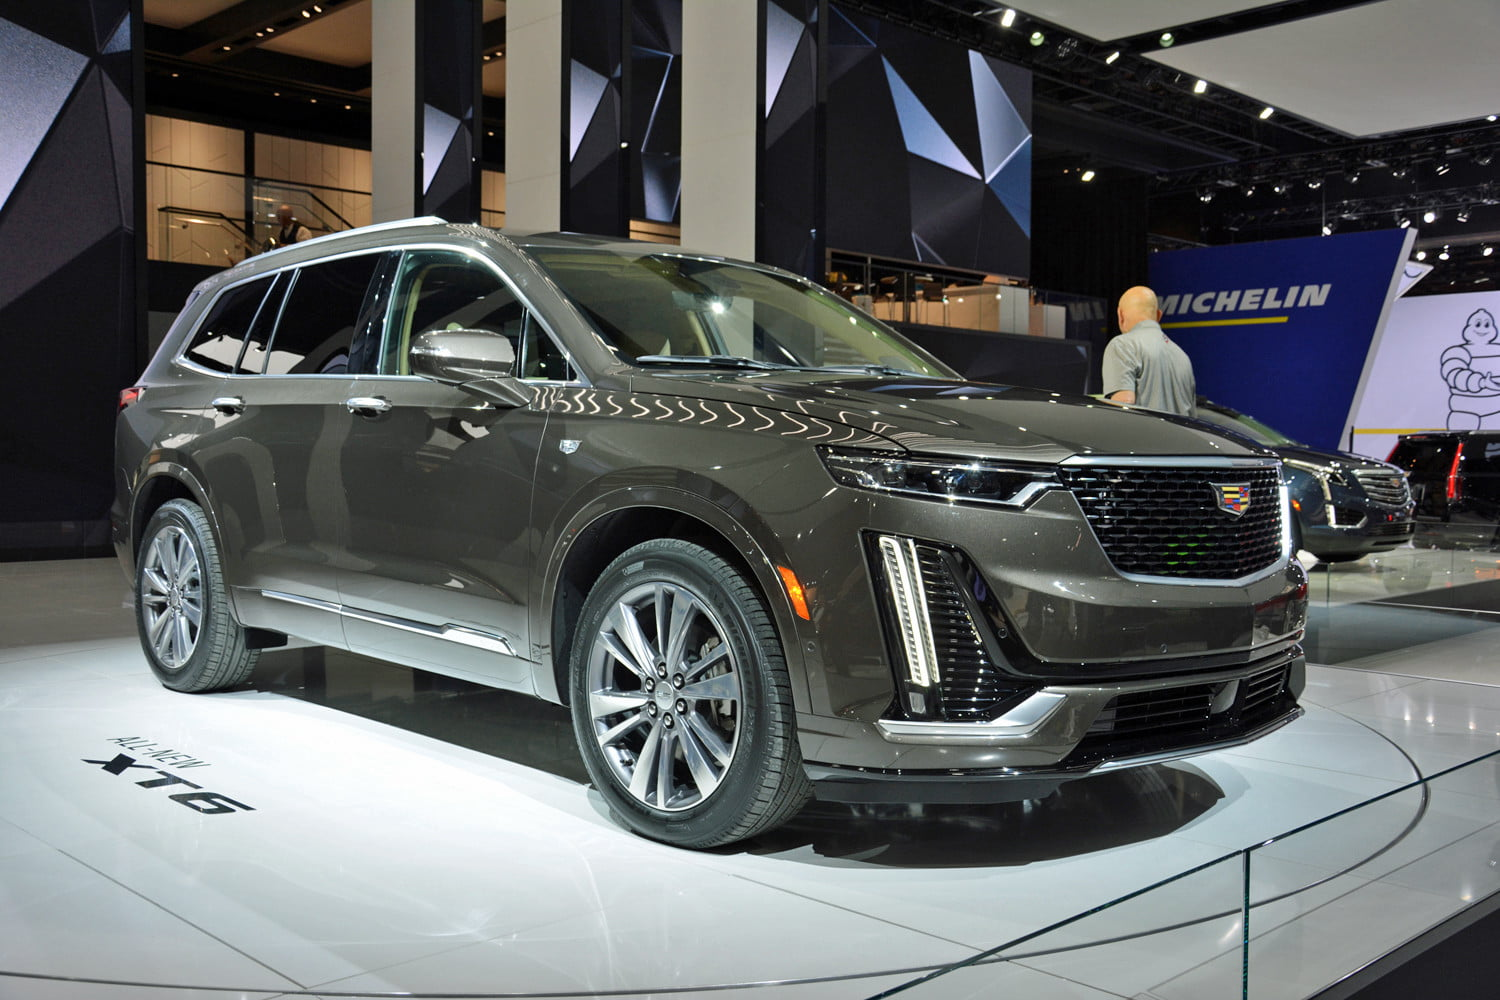 2020 Cadillac XT6: Design, Specs, Equipment, Price >> 2020 Cadillac Xt6 Revealed Ahead Of 2019 Detroit Auto Show Digital